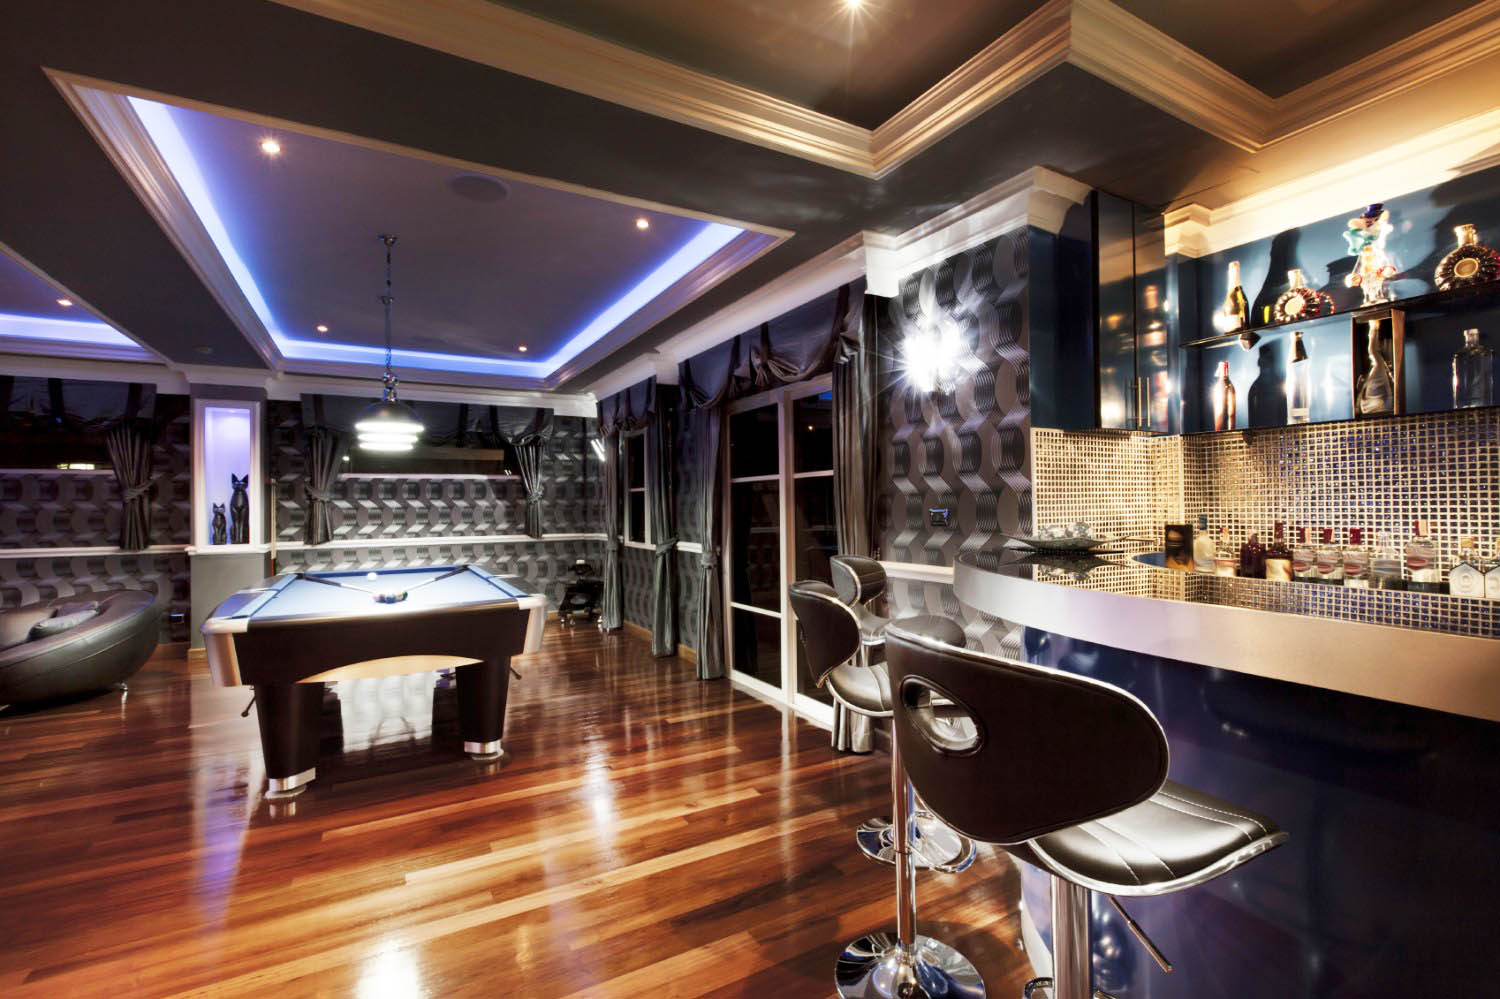 If you're going for an awesome idea to complete your man cave, this is an elegant and futuristic way to make it happen.